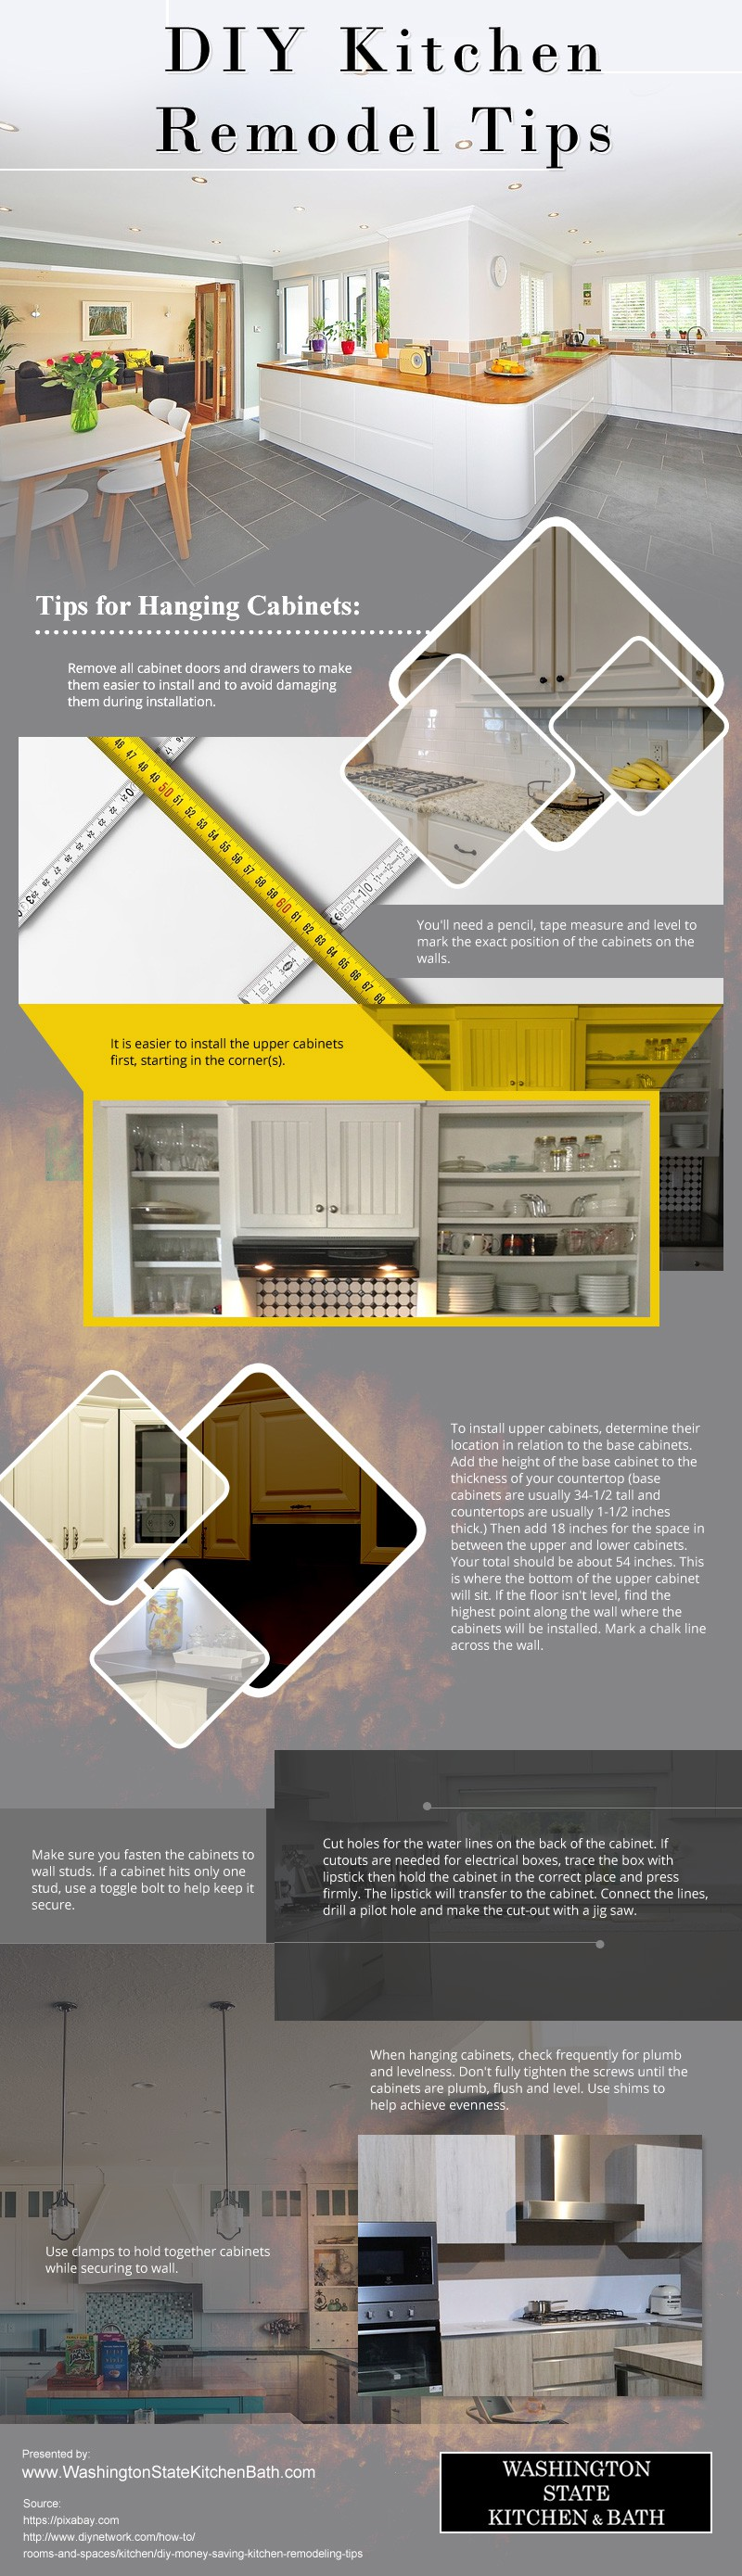 DIY-Kitchen-Remodel-Tips Infographic